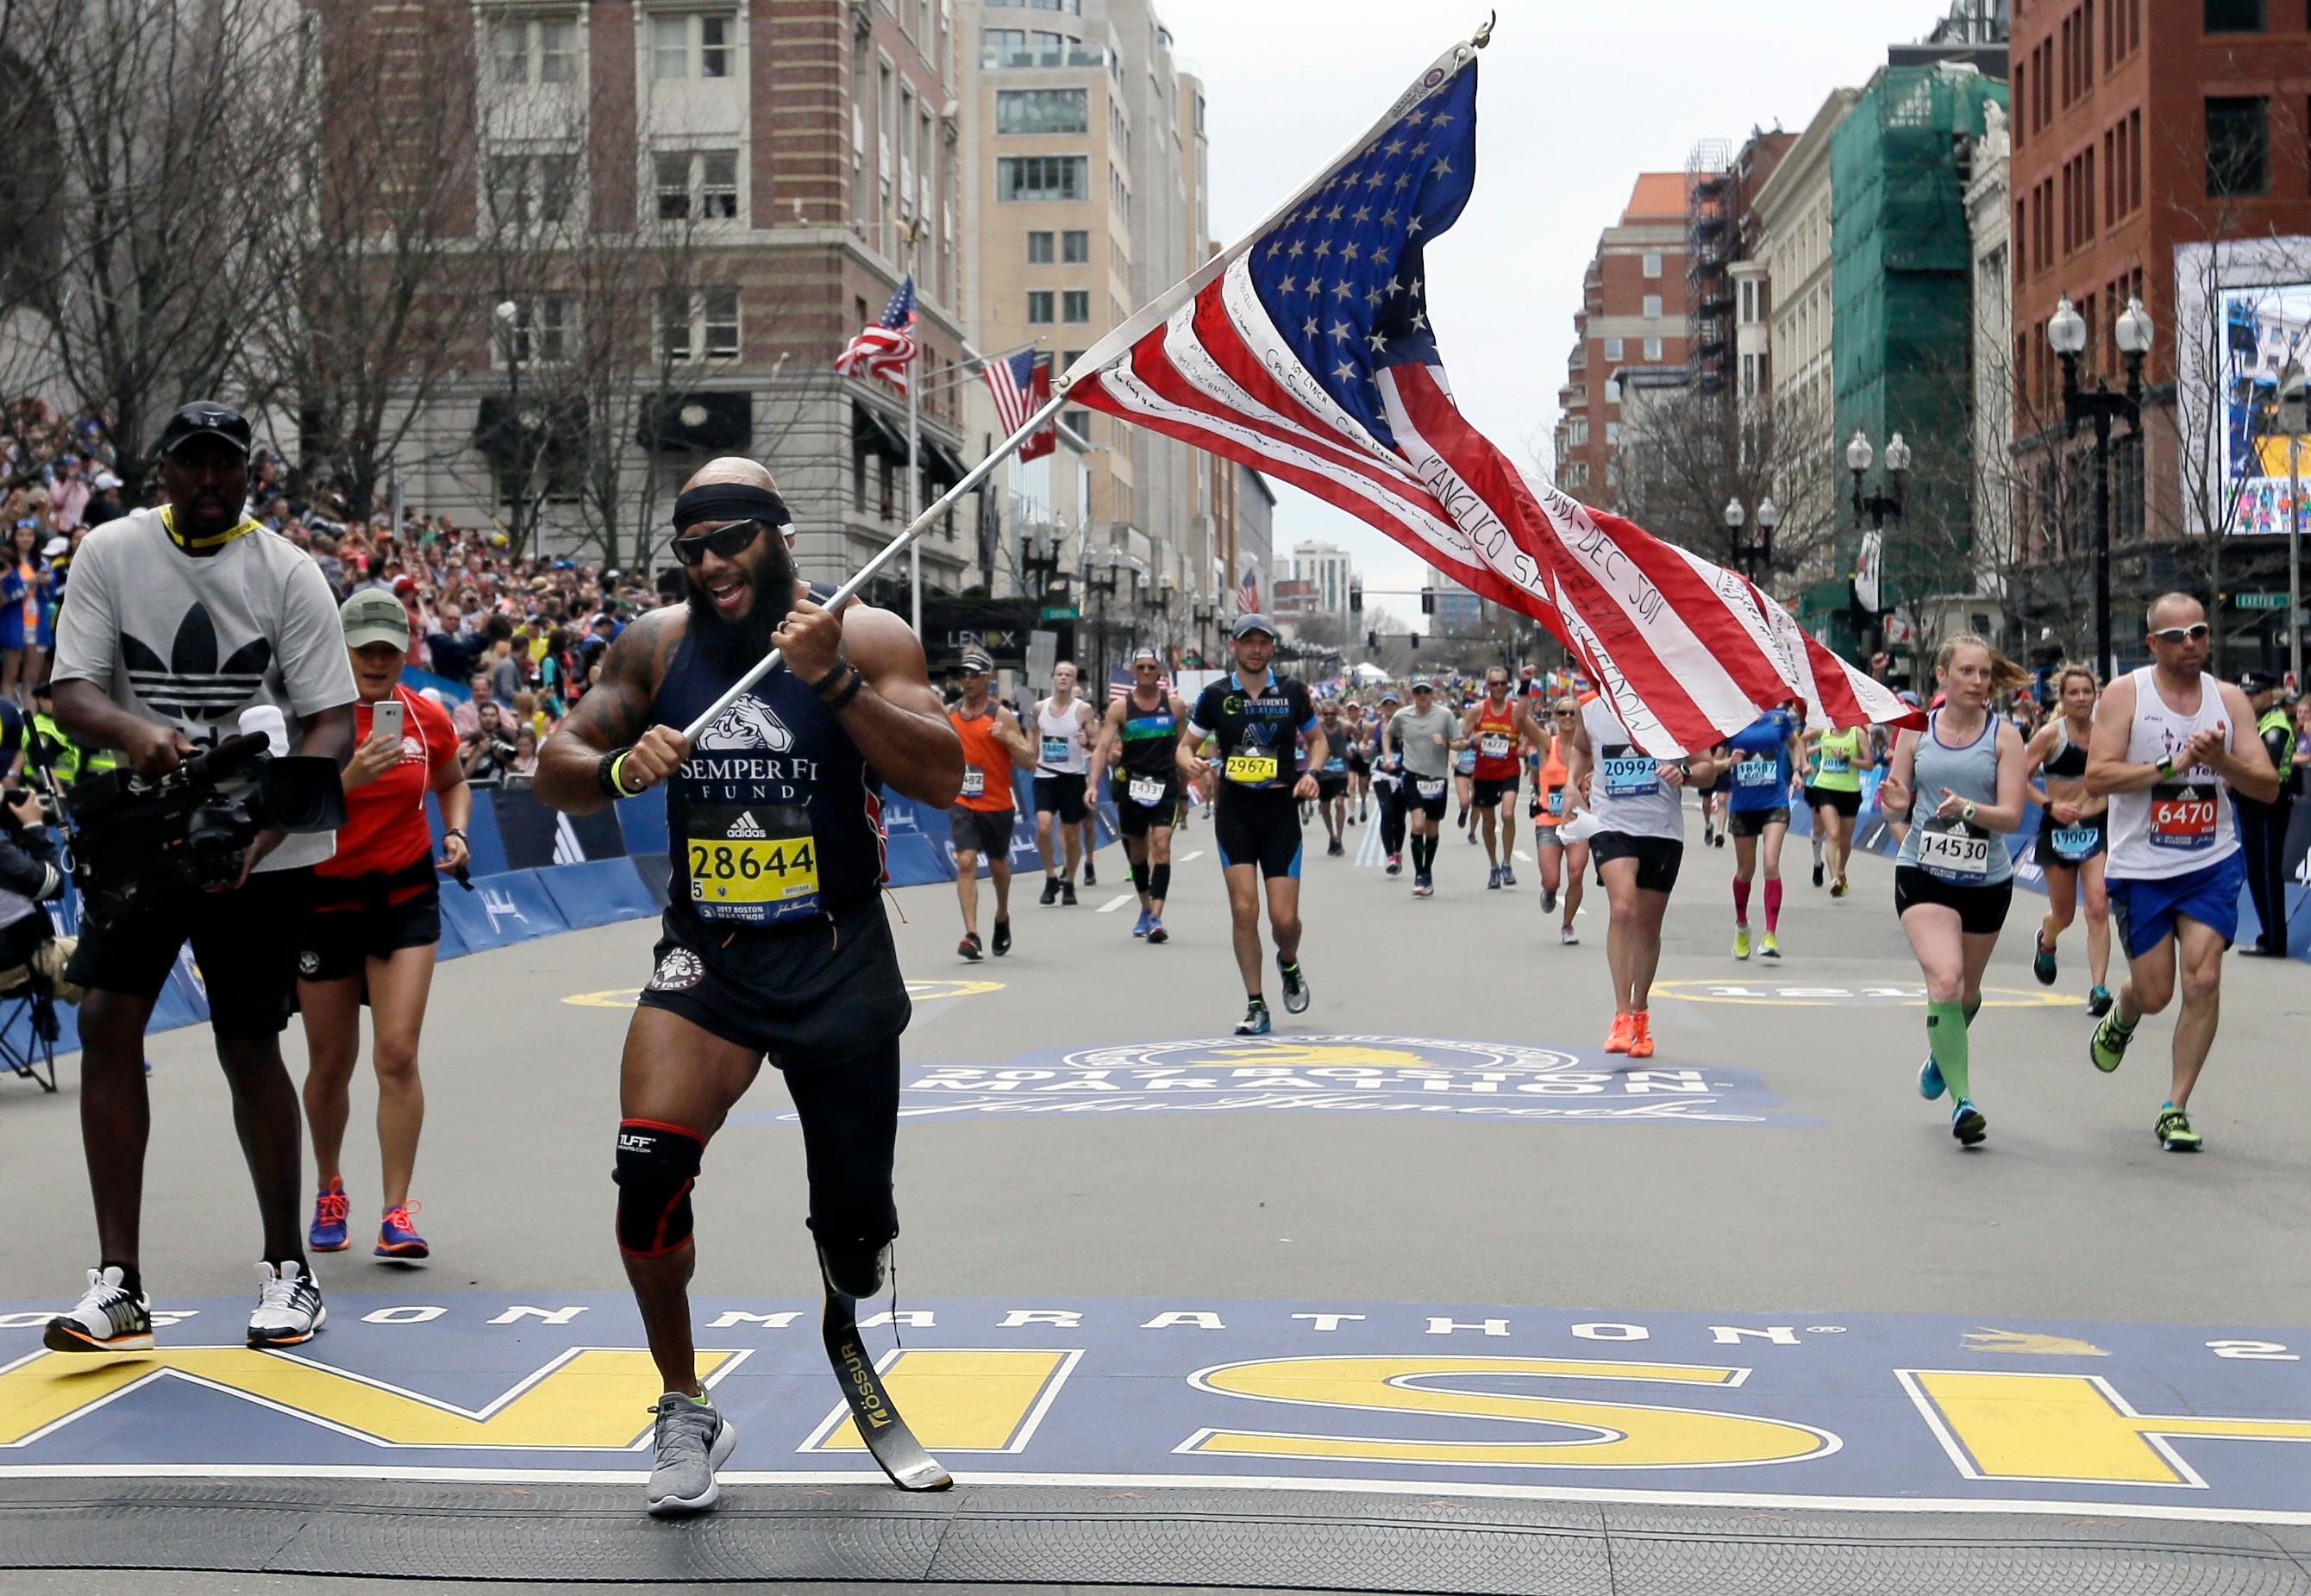 Jose Sanchez, of San Antonio, carries the United States flag across the finish line in the 121st Boston Marathon on Monday, April 17, 2017, in Boston. (AP Photo/Elise Amendola)